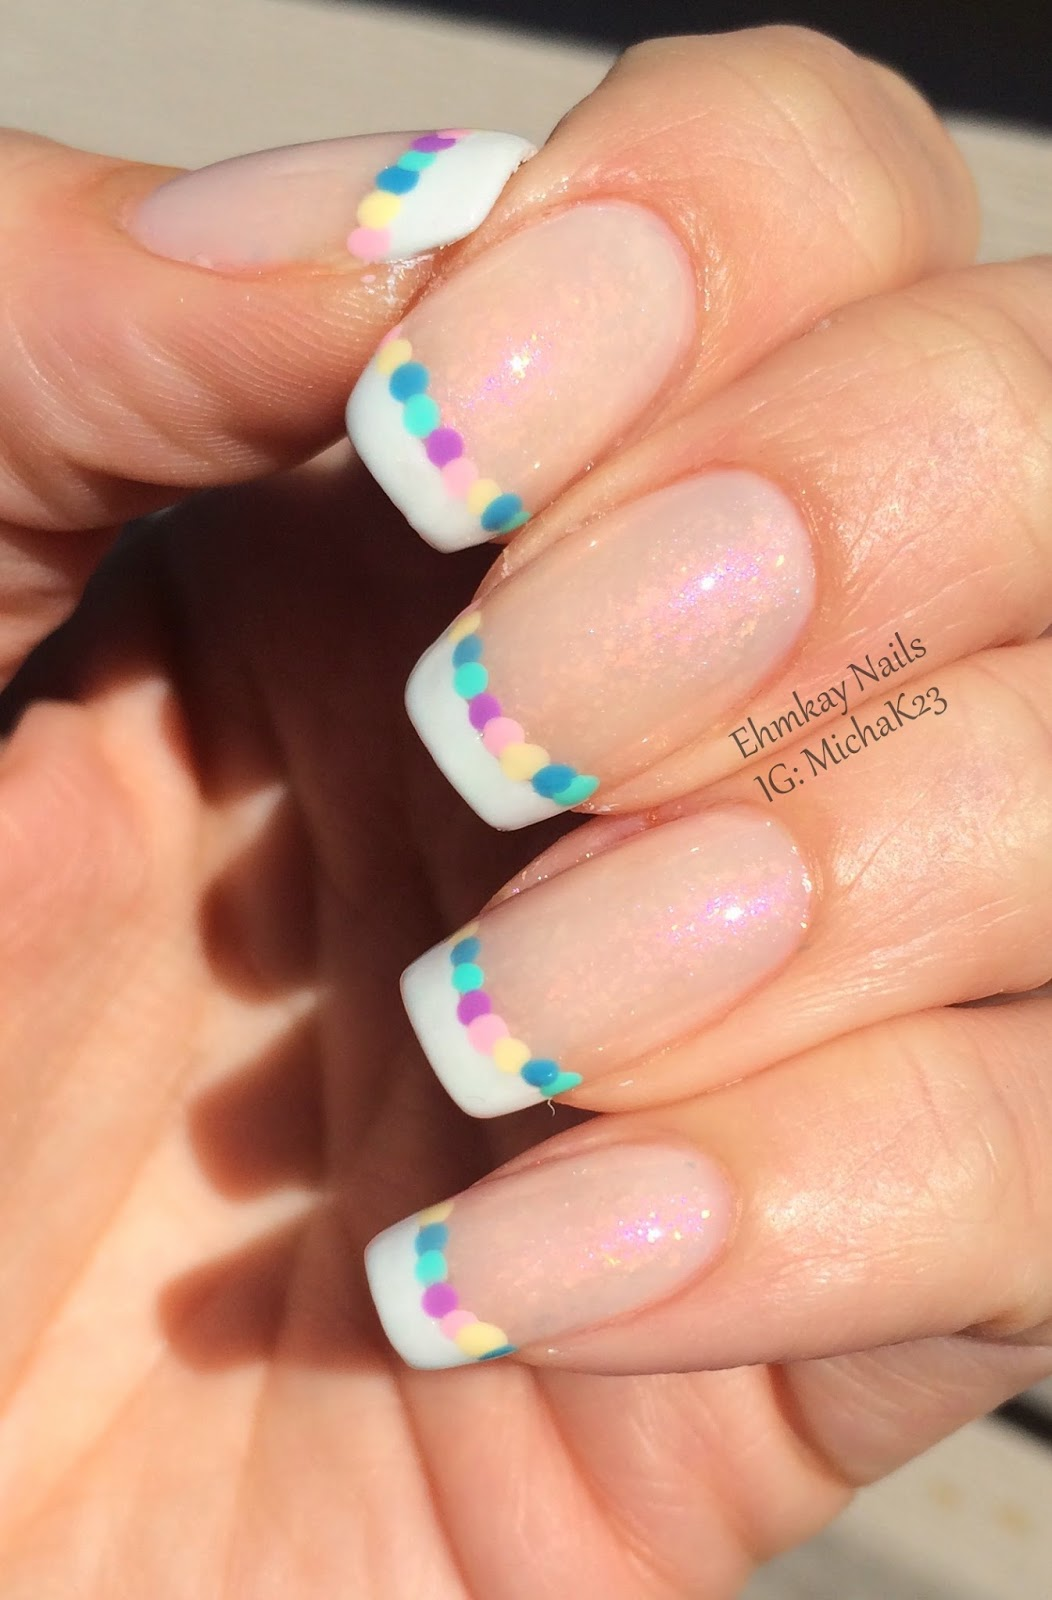 Ehmkay nails easter egg french manicure easter egg french manicure prinsesfo Images